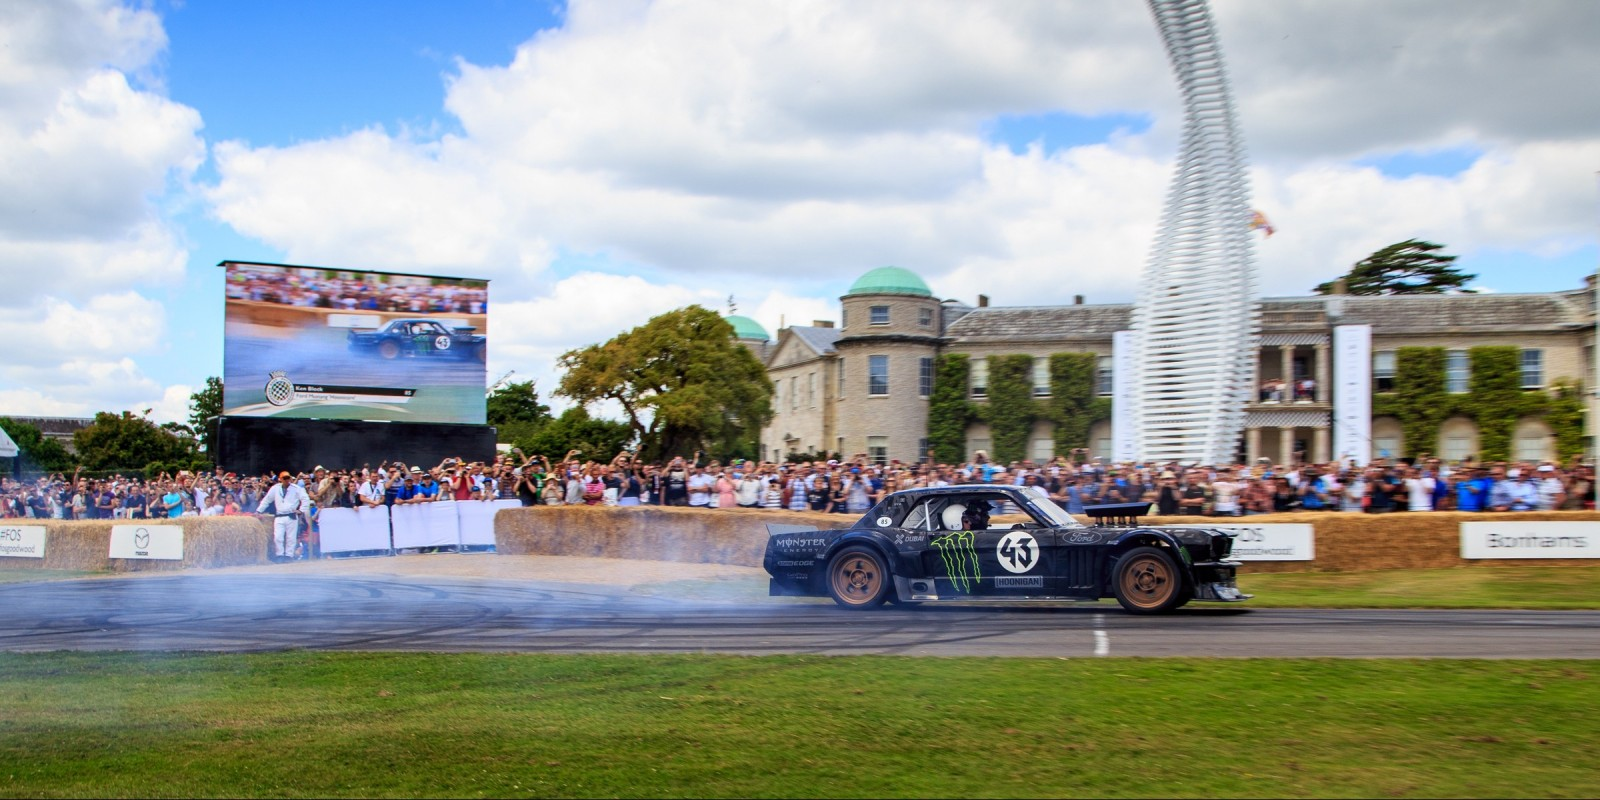 Ken Block at Goodwood FOS